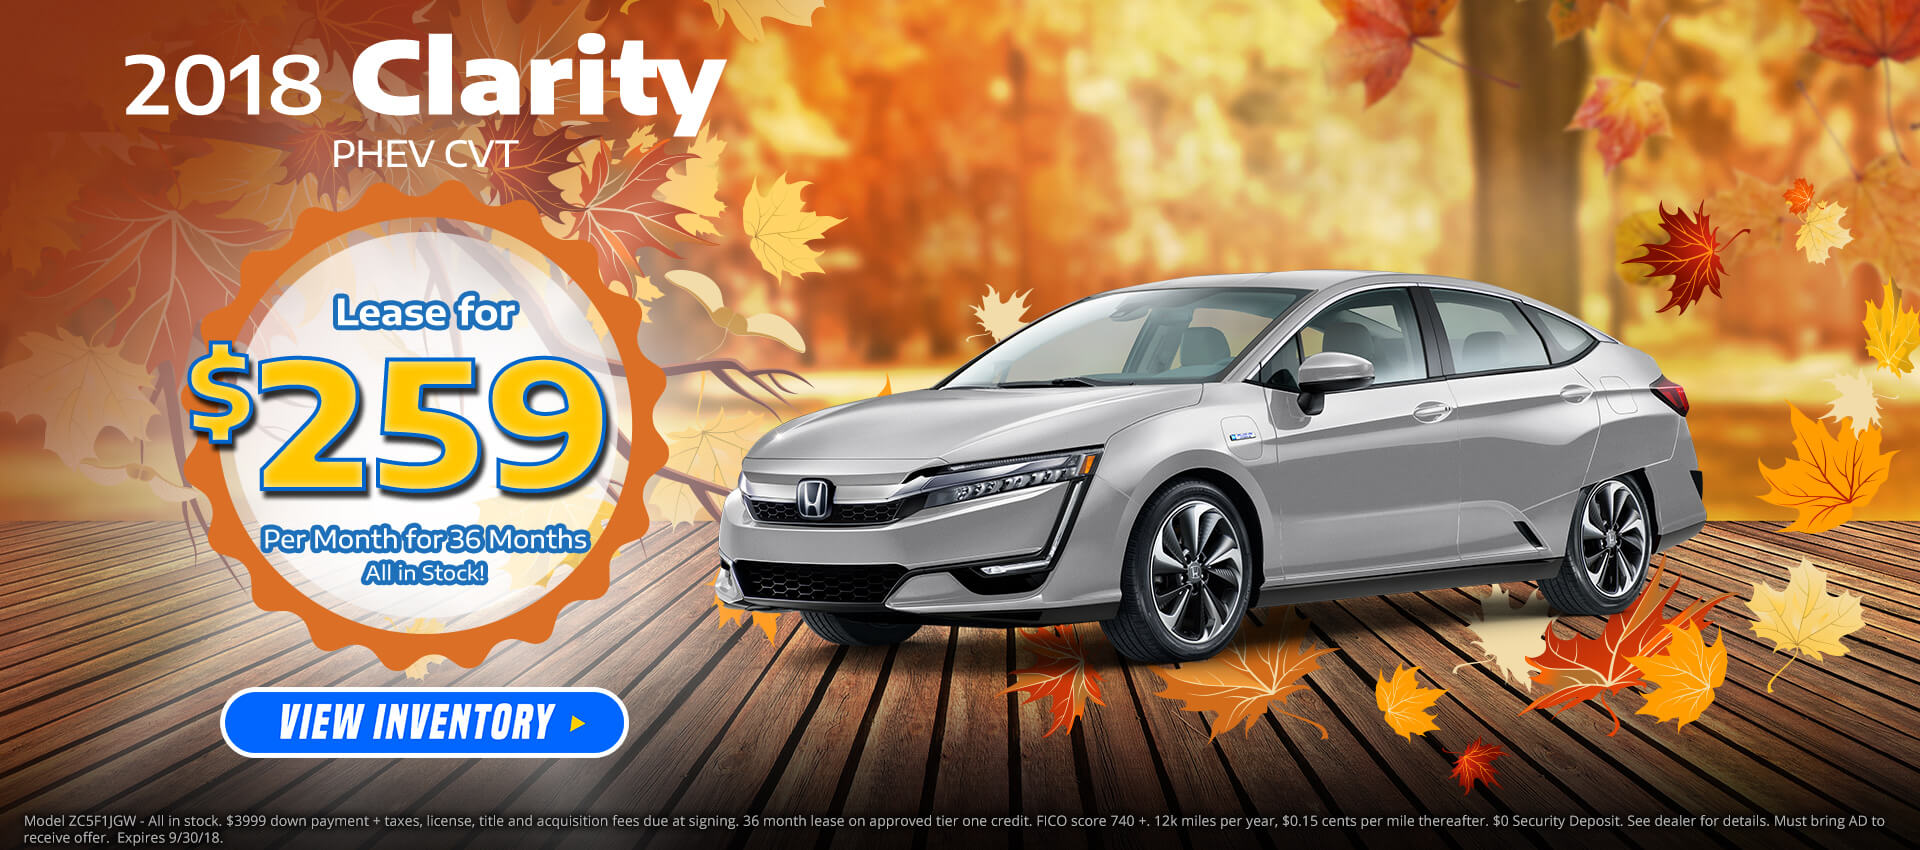 Honda Clarity PHEV $259 Lease